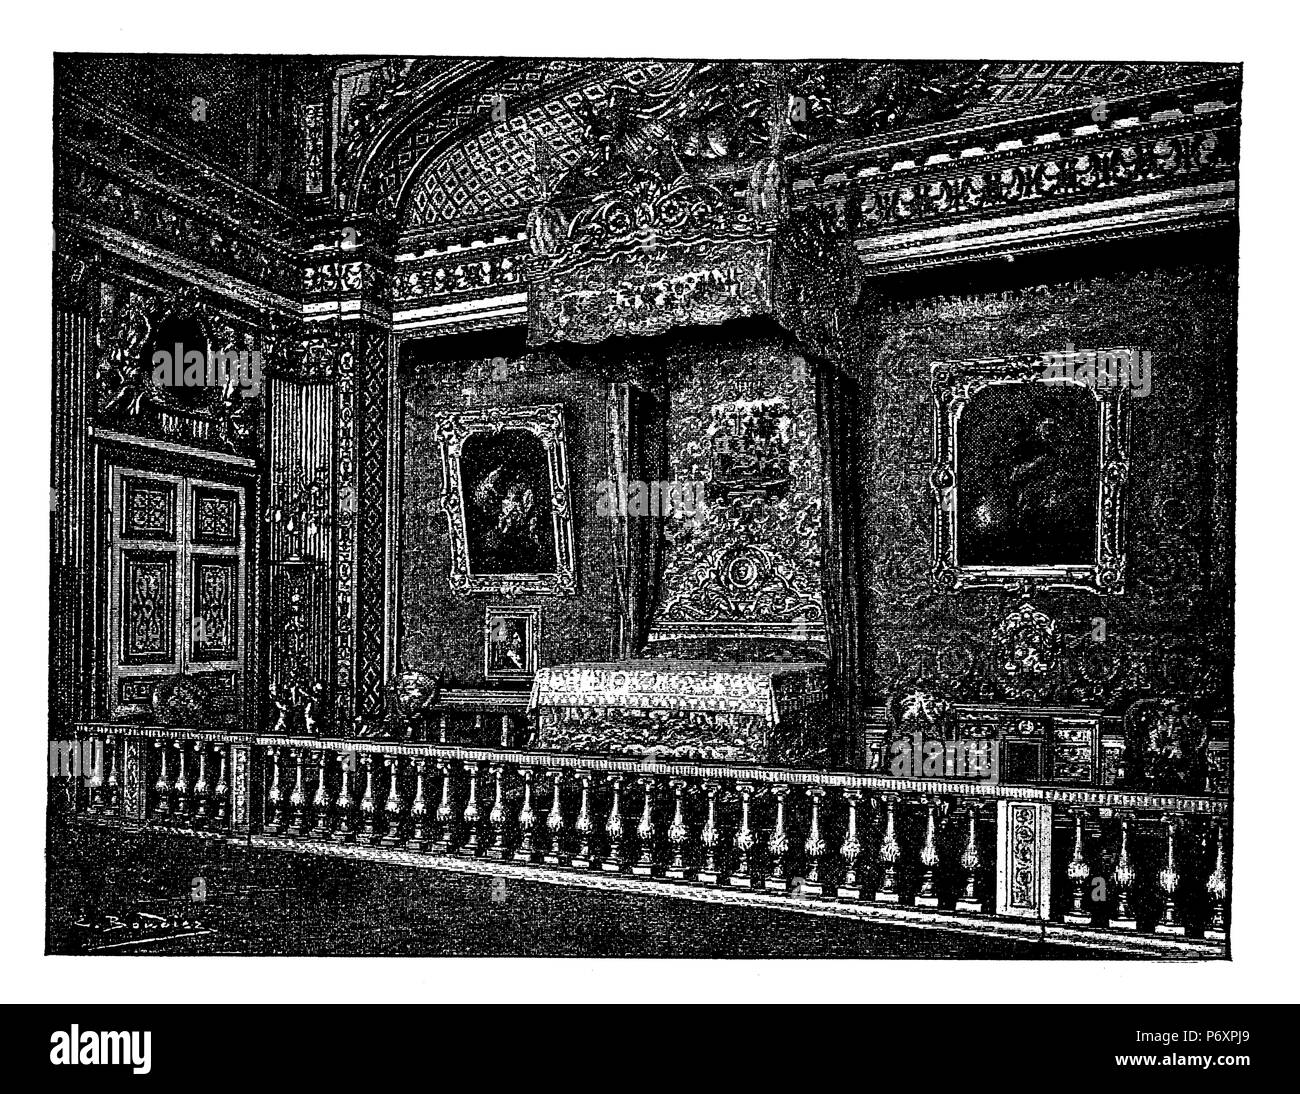 Bedroom of Louis XIV in the Palace of Versailles. To Durun, Stock Photo